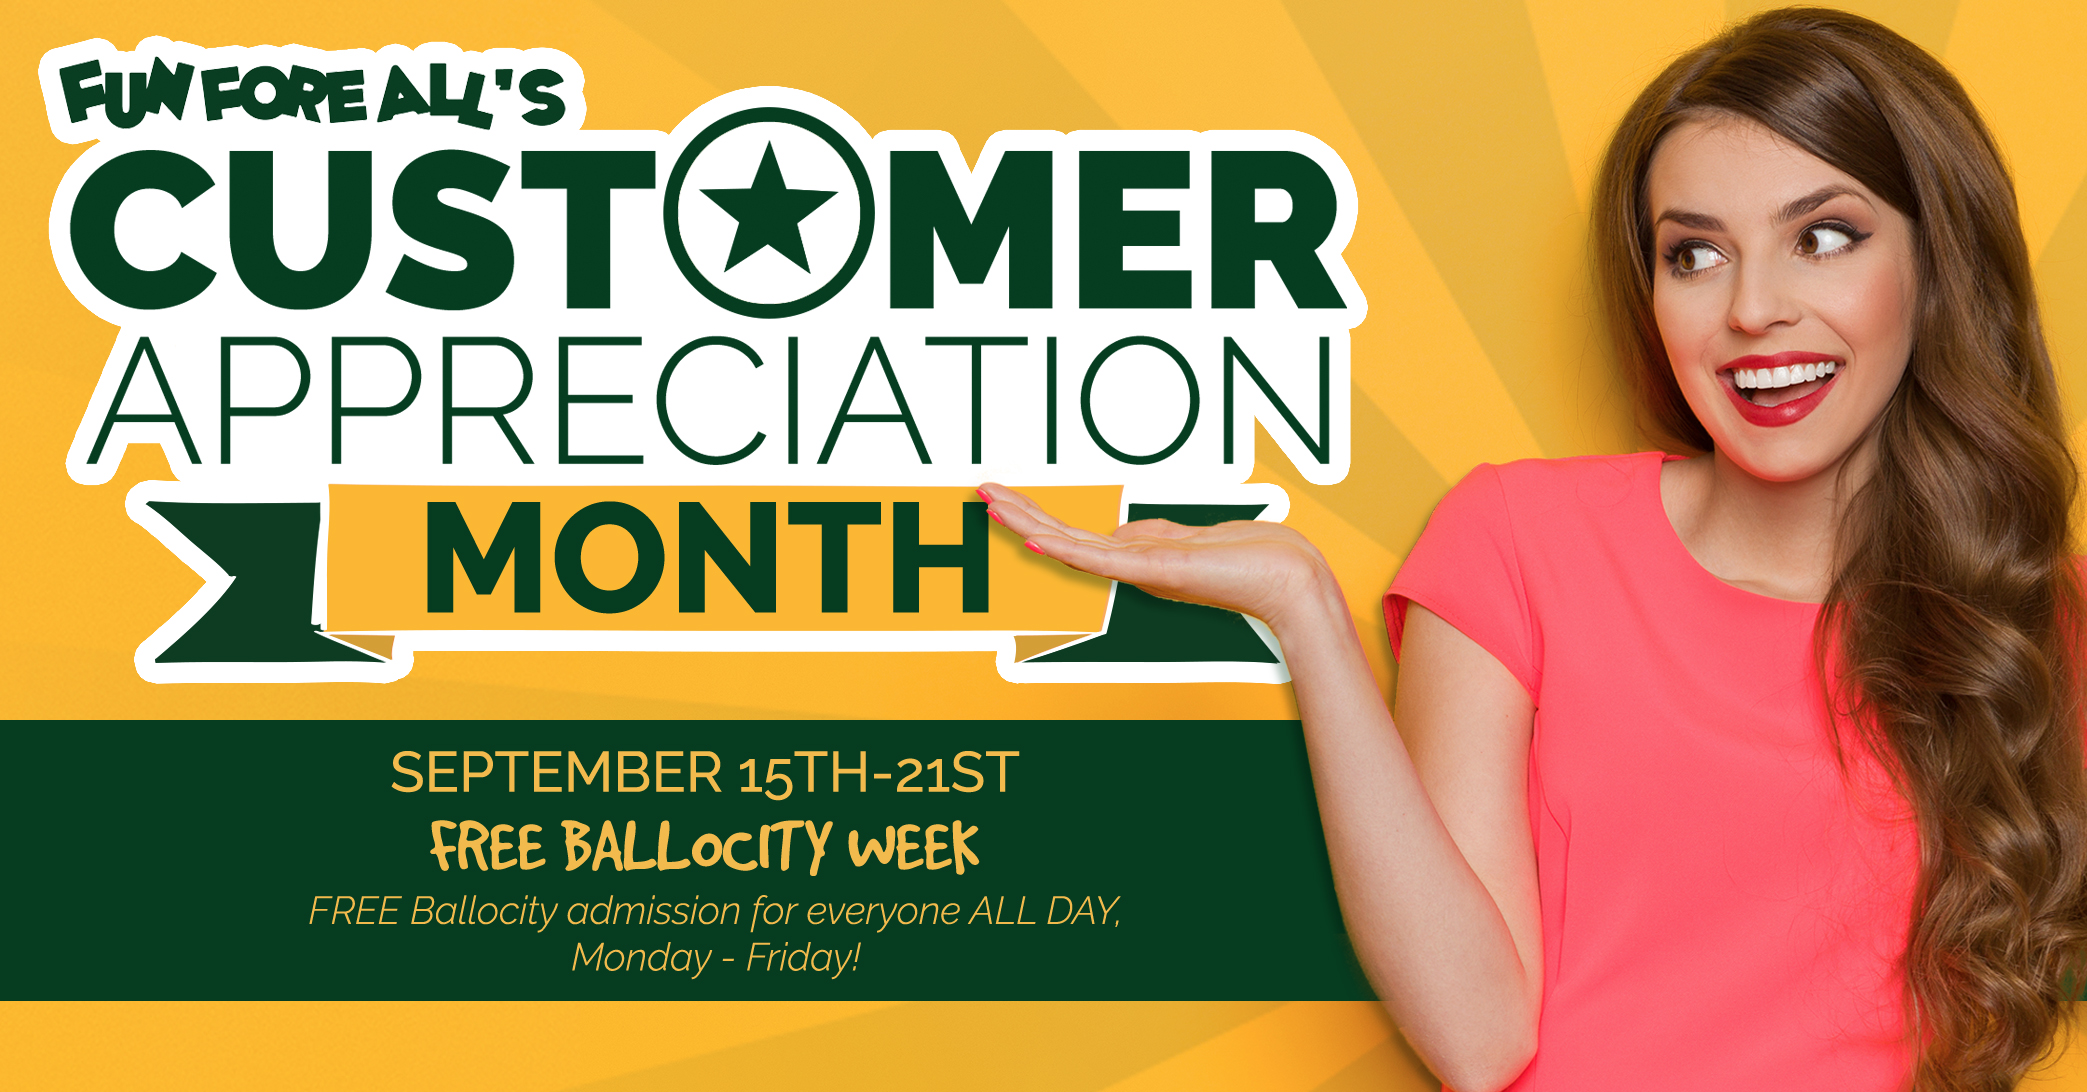 Facebook Invite (Customer Appreciation Month) Free Ballocity Week 2019.jpg